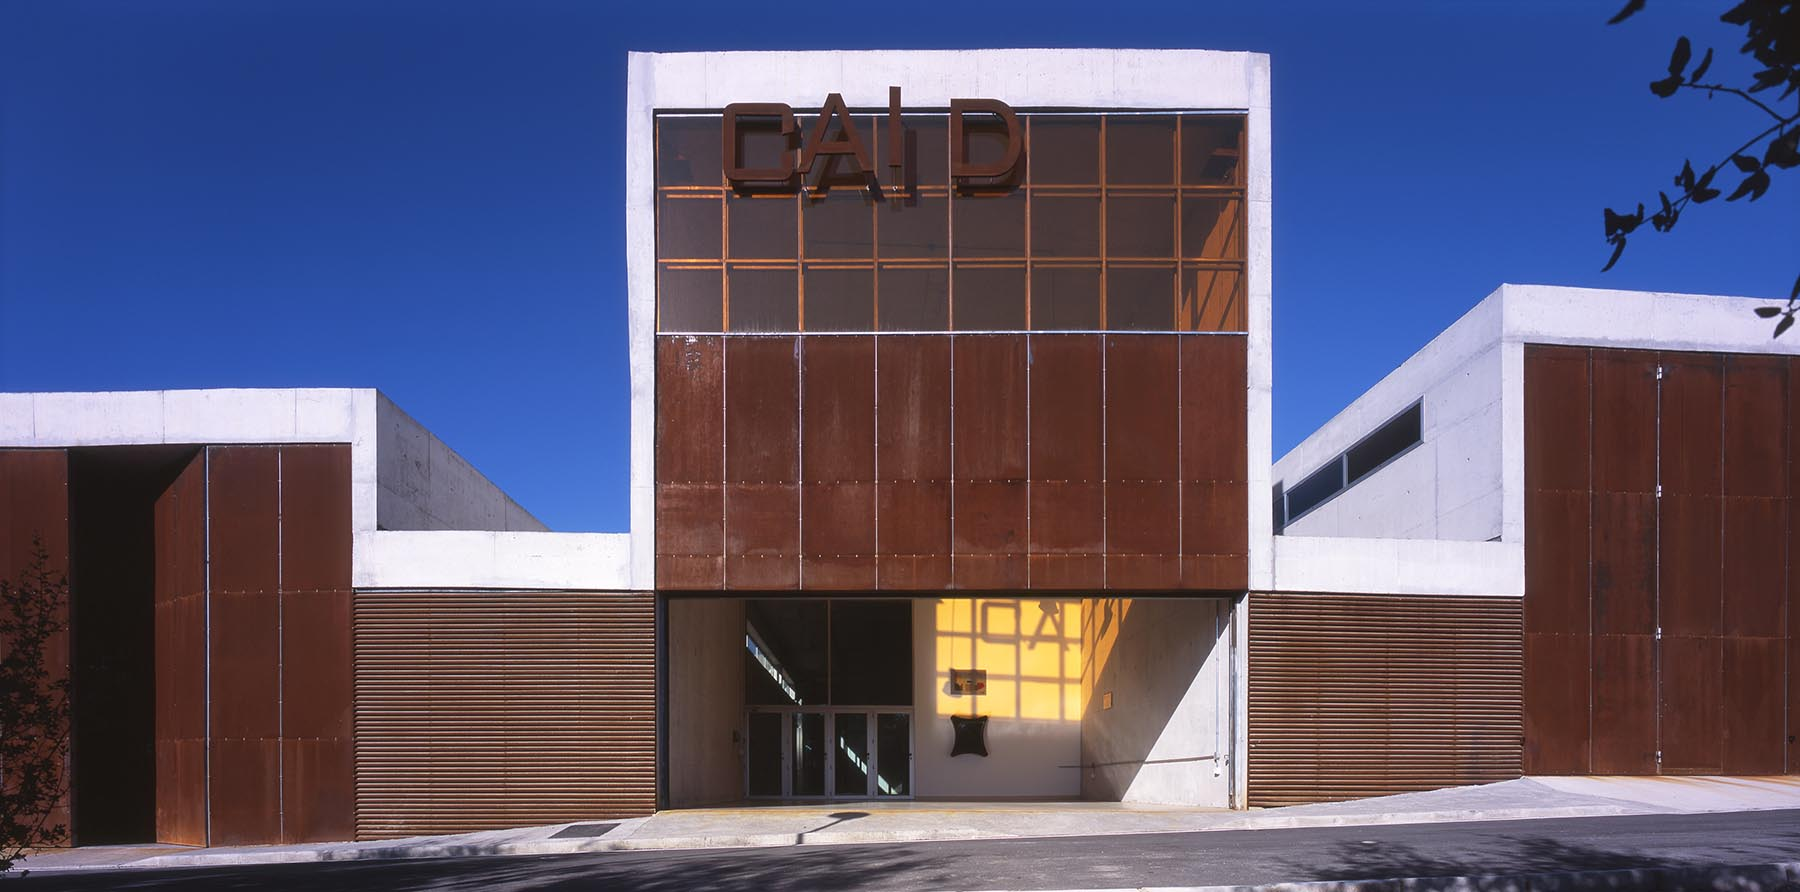 Support Centre for Research and Development. CAID. University of Murcia